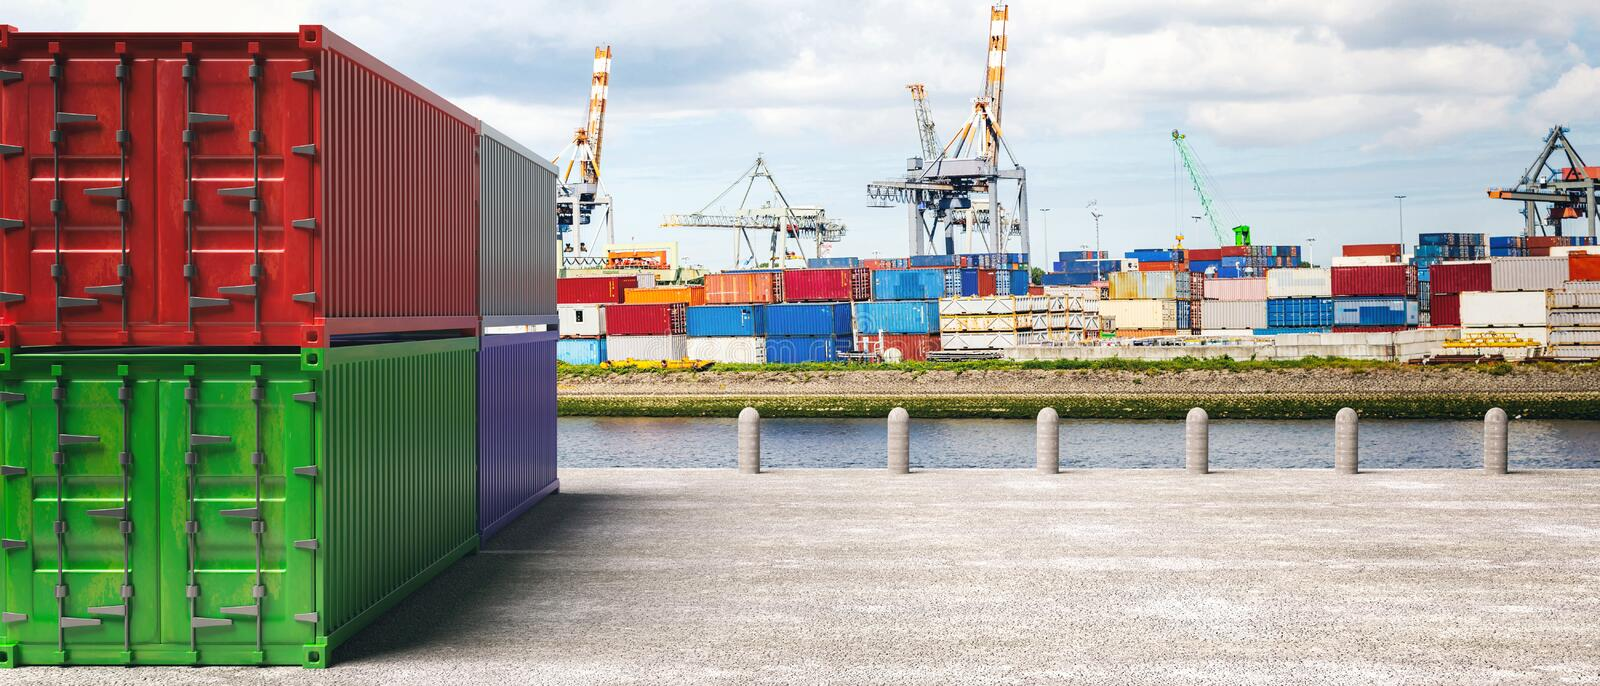 Cargo containers, harbor background. Import export, logistics concept. 3d illustration stock illustration